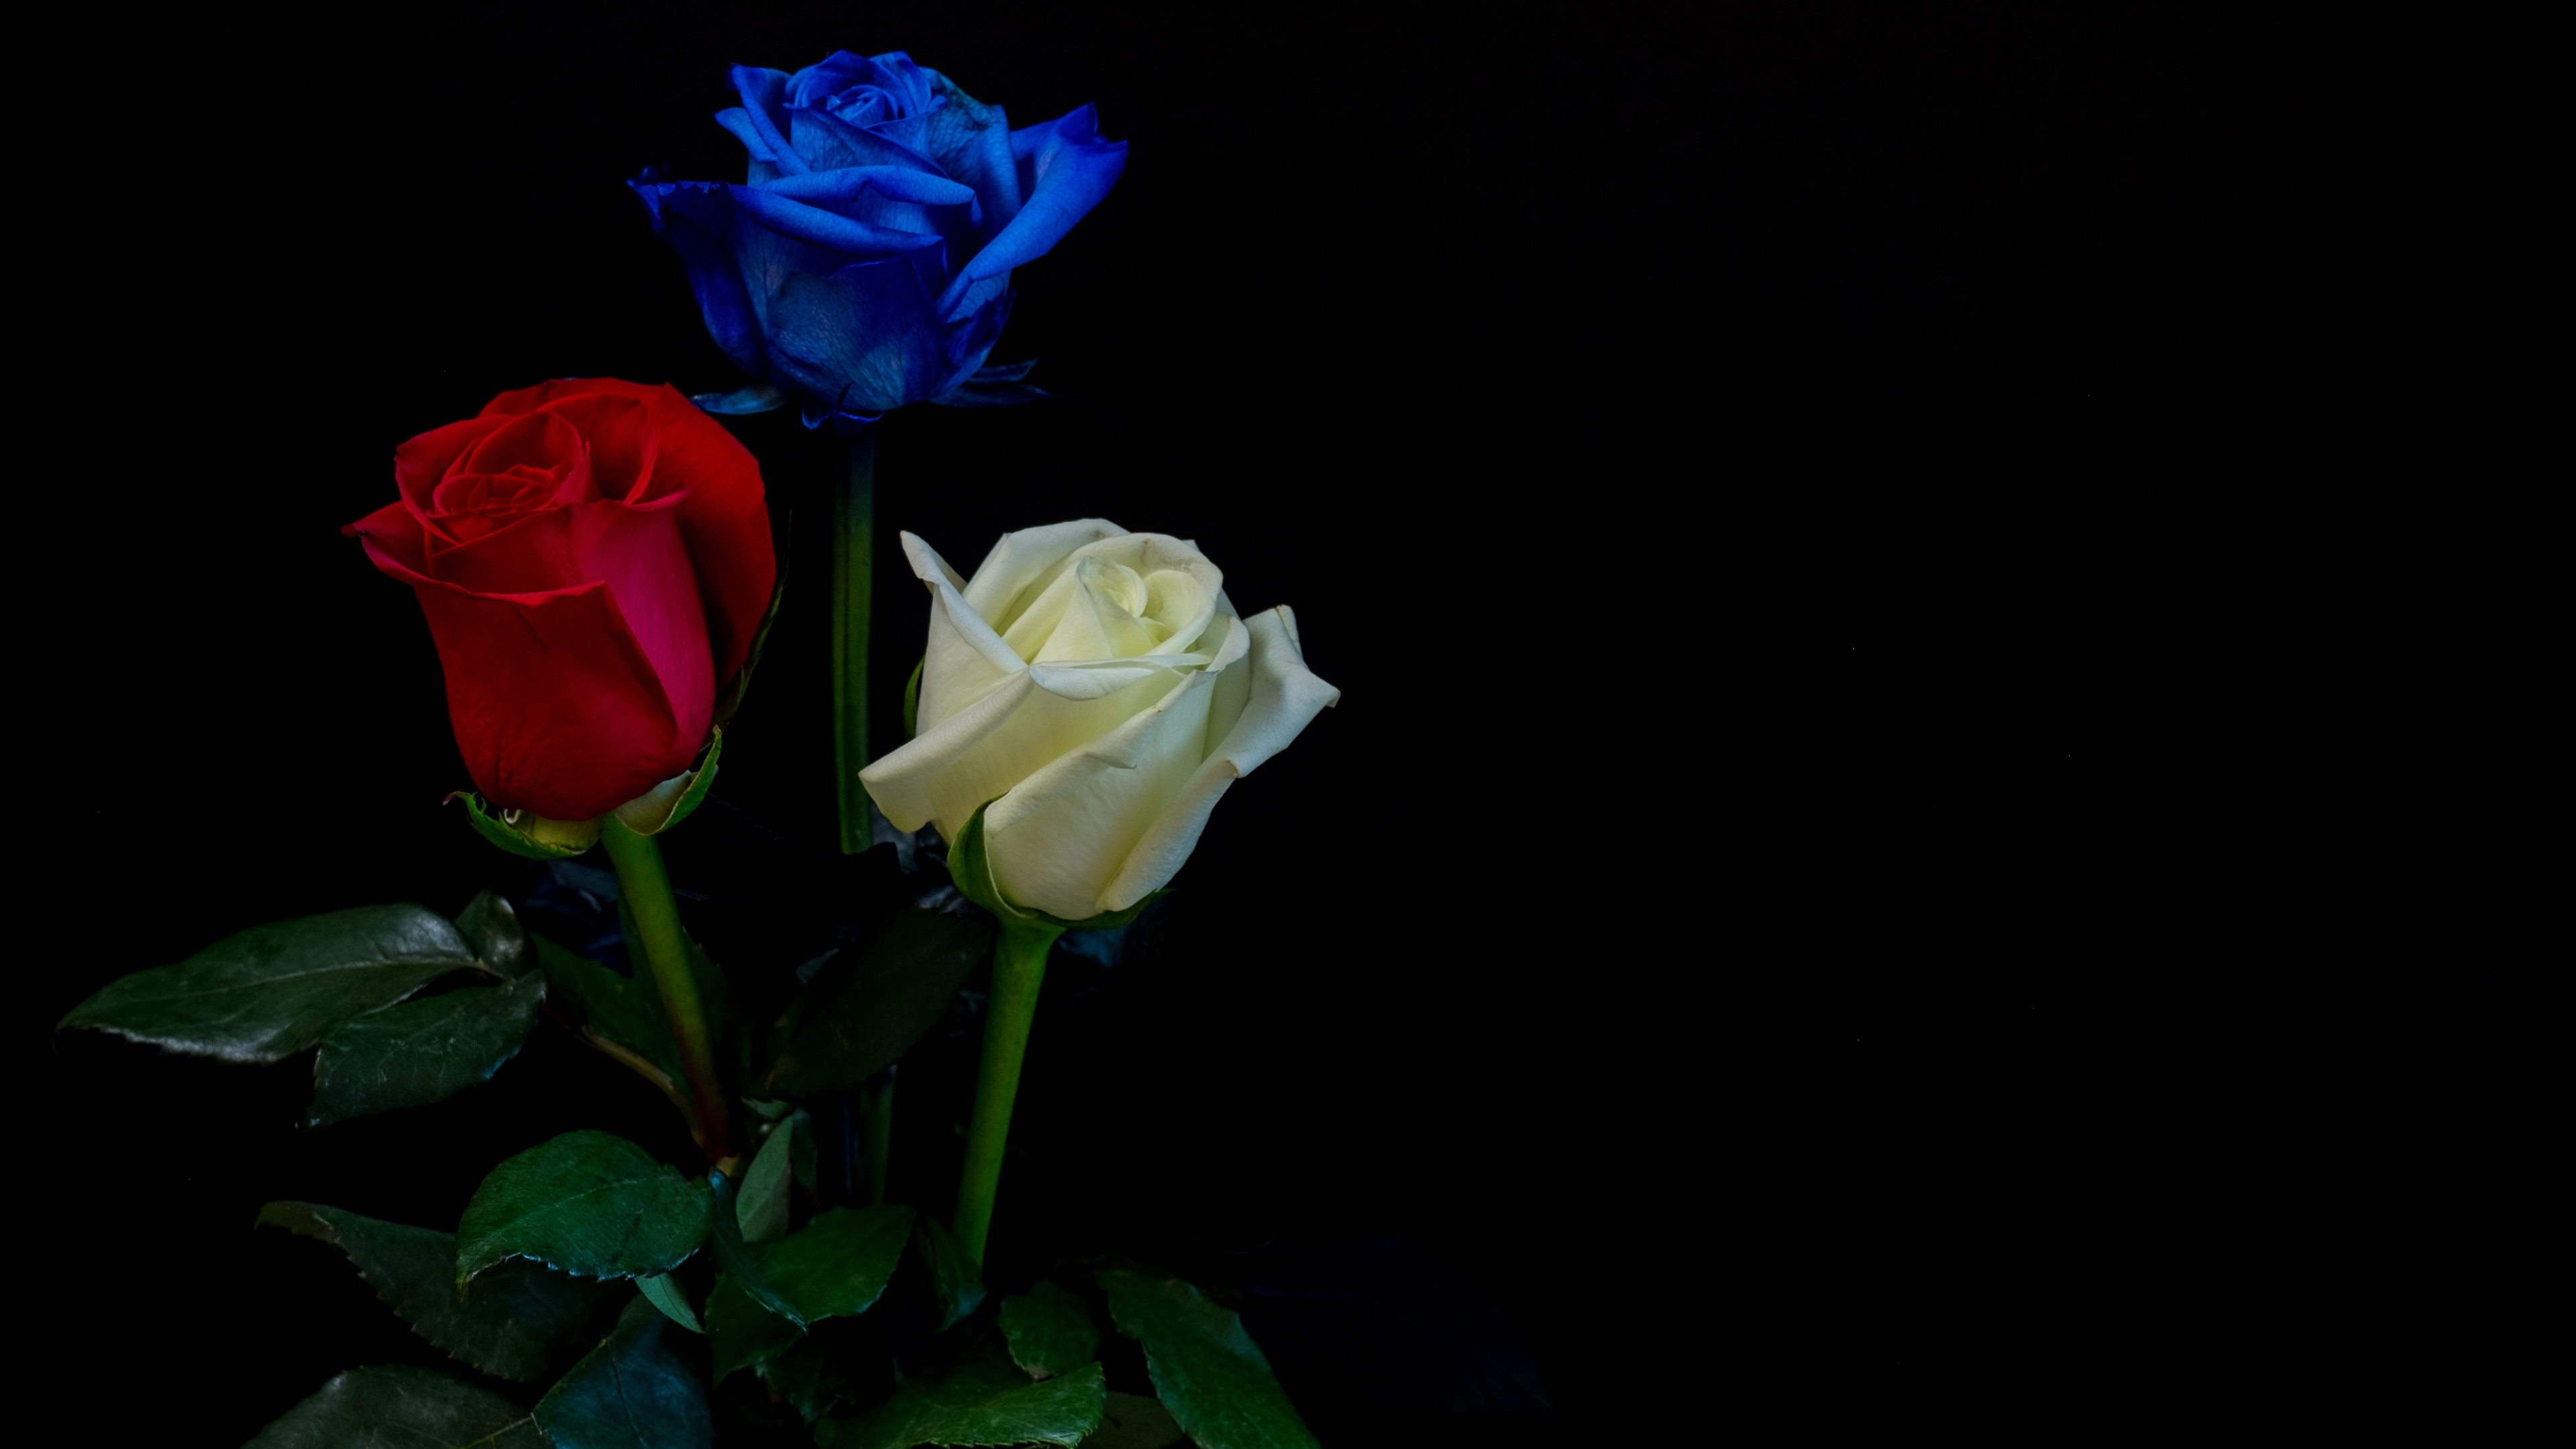 Wallpaper White Red Blue Three Colors Roses Black